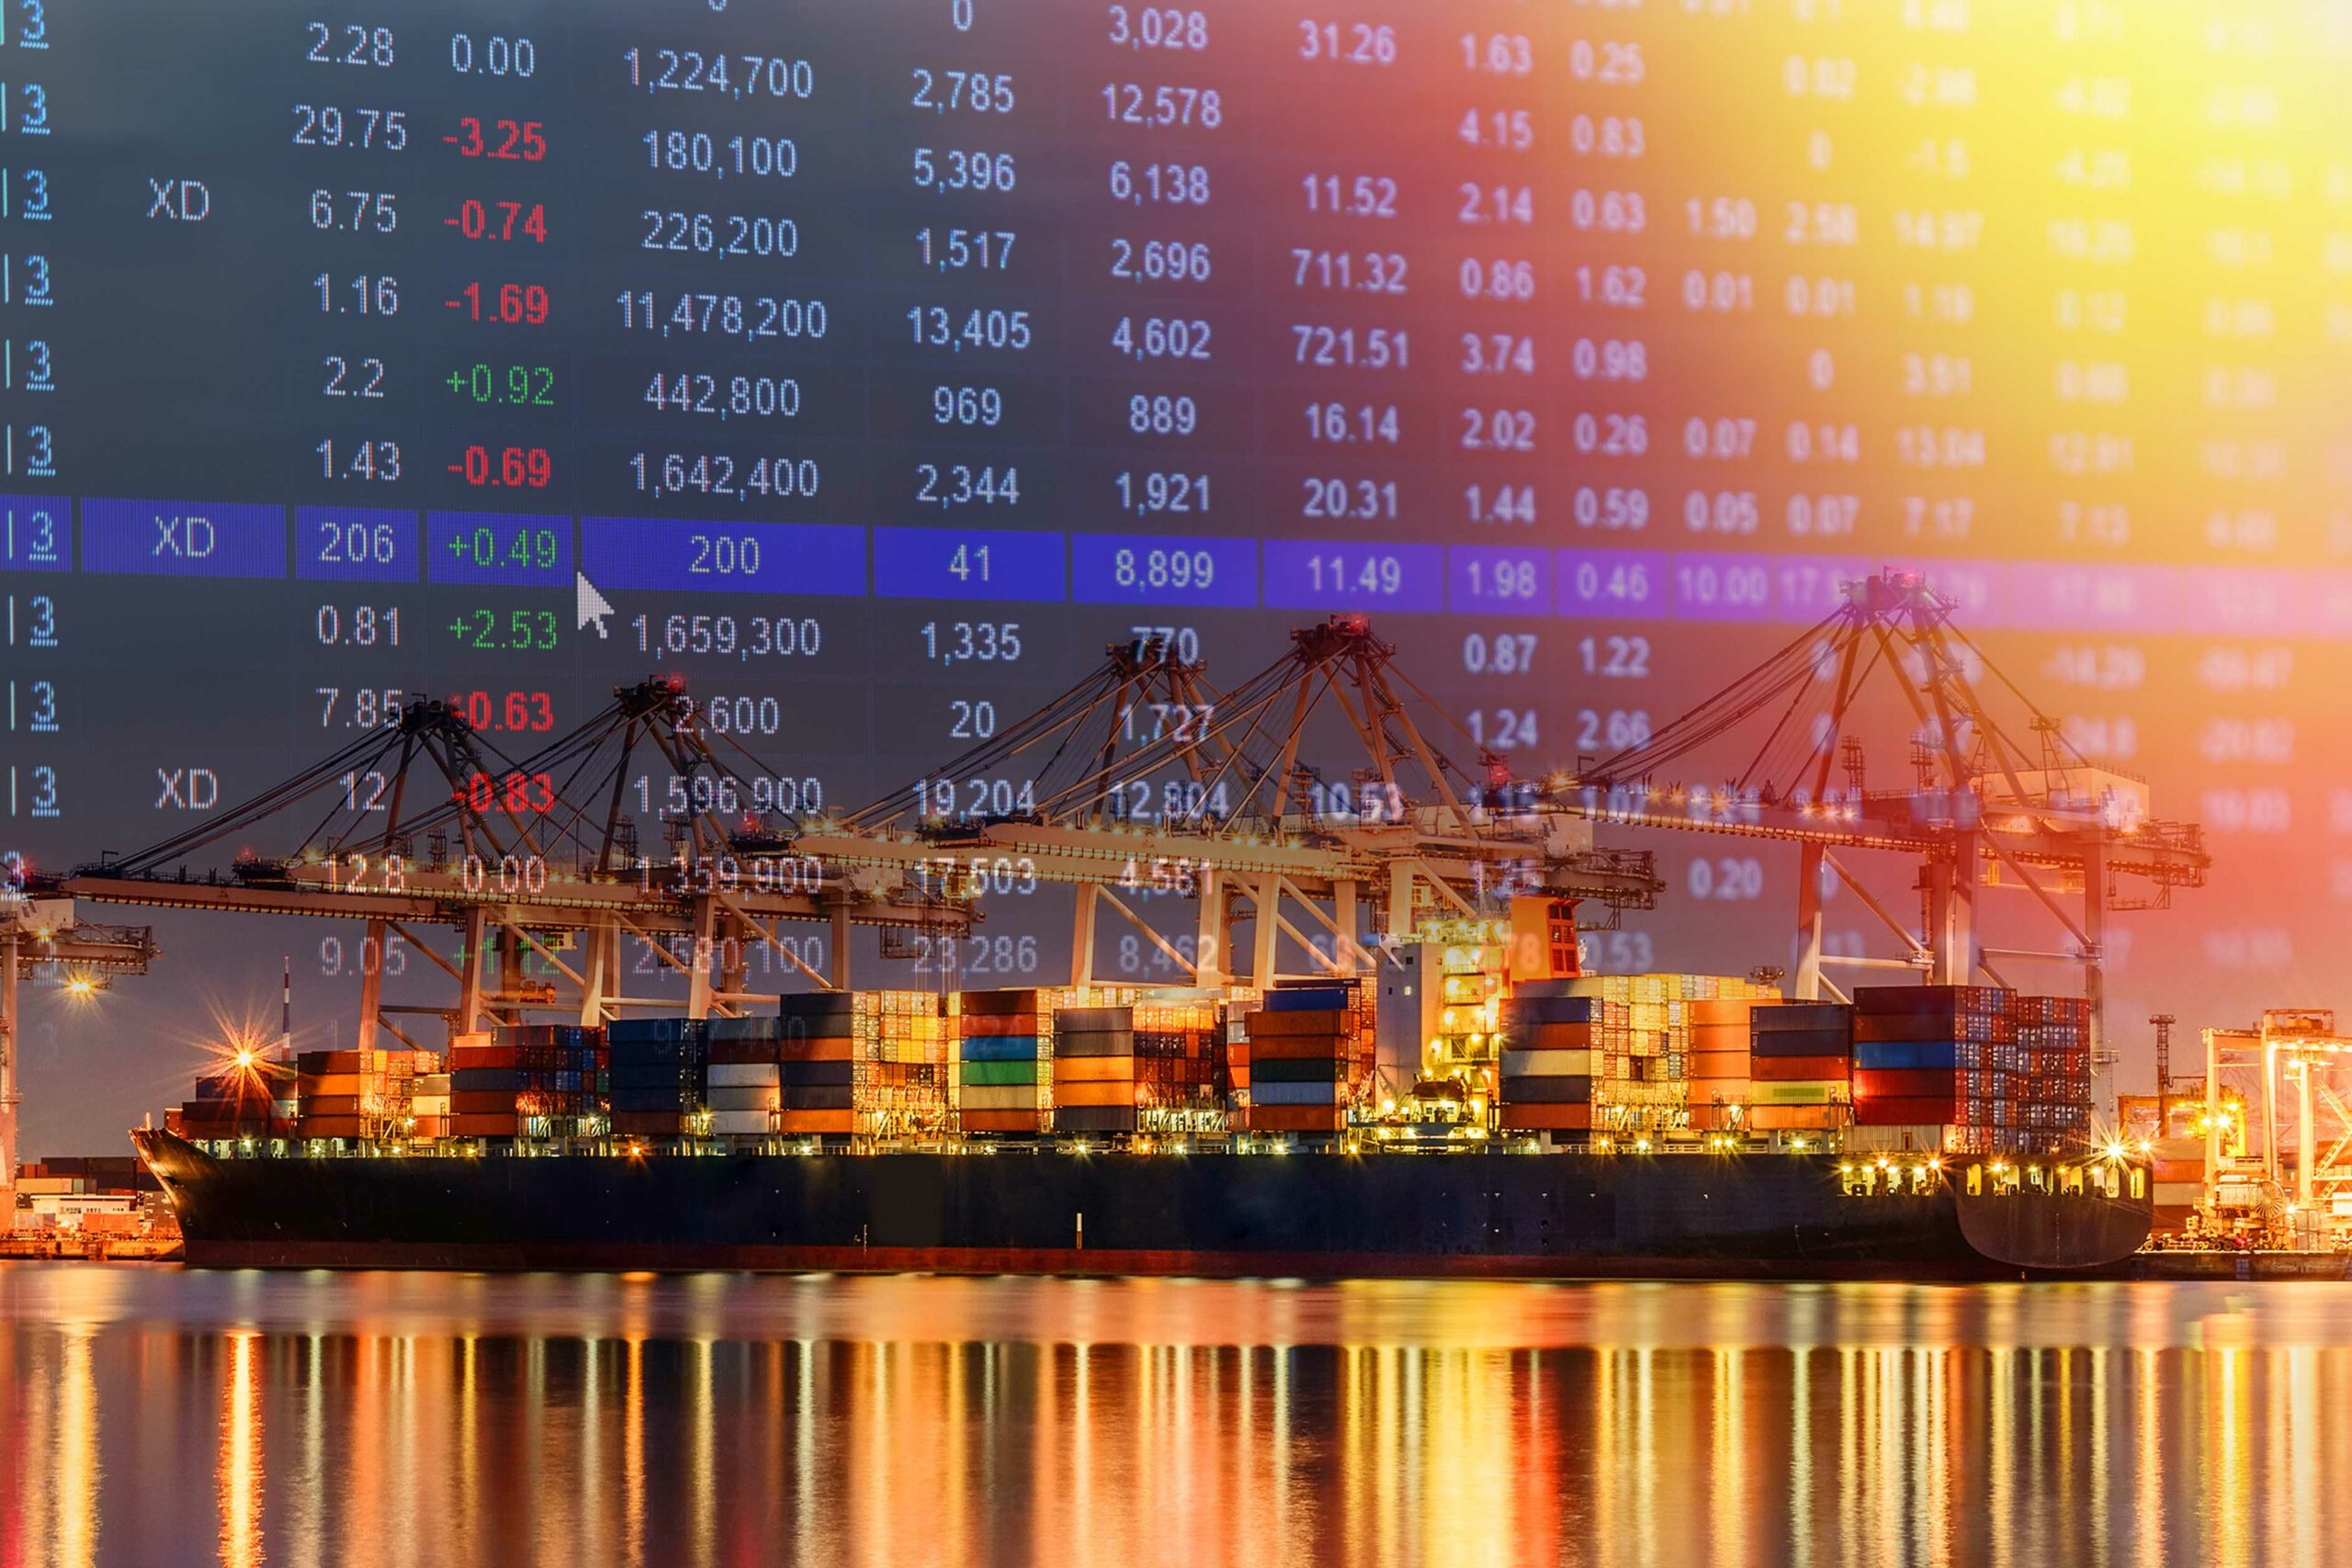 Container carriers and how they control profitability 1